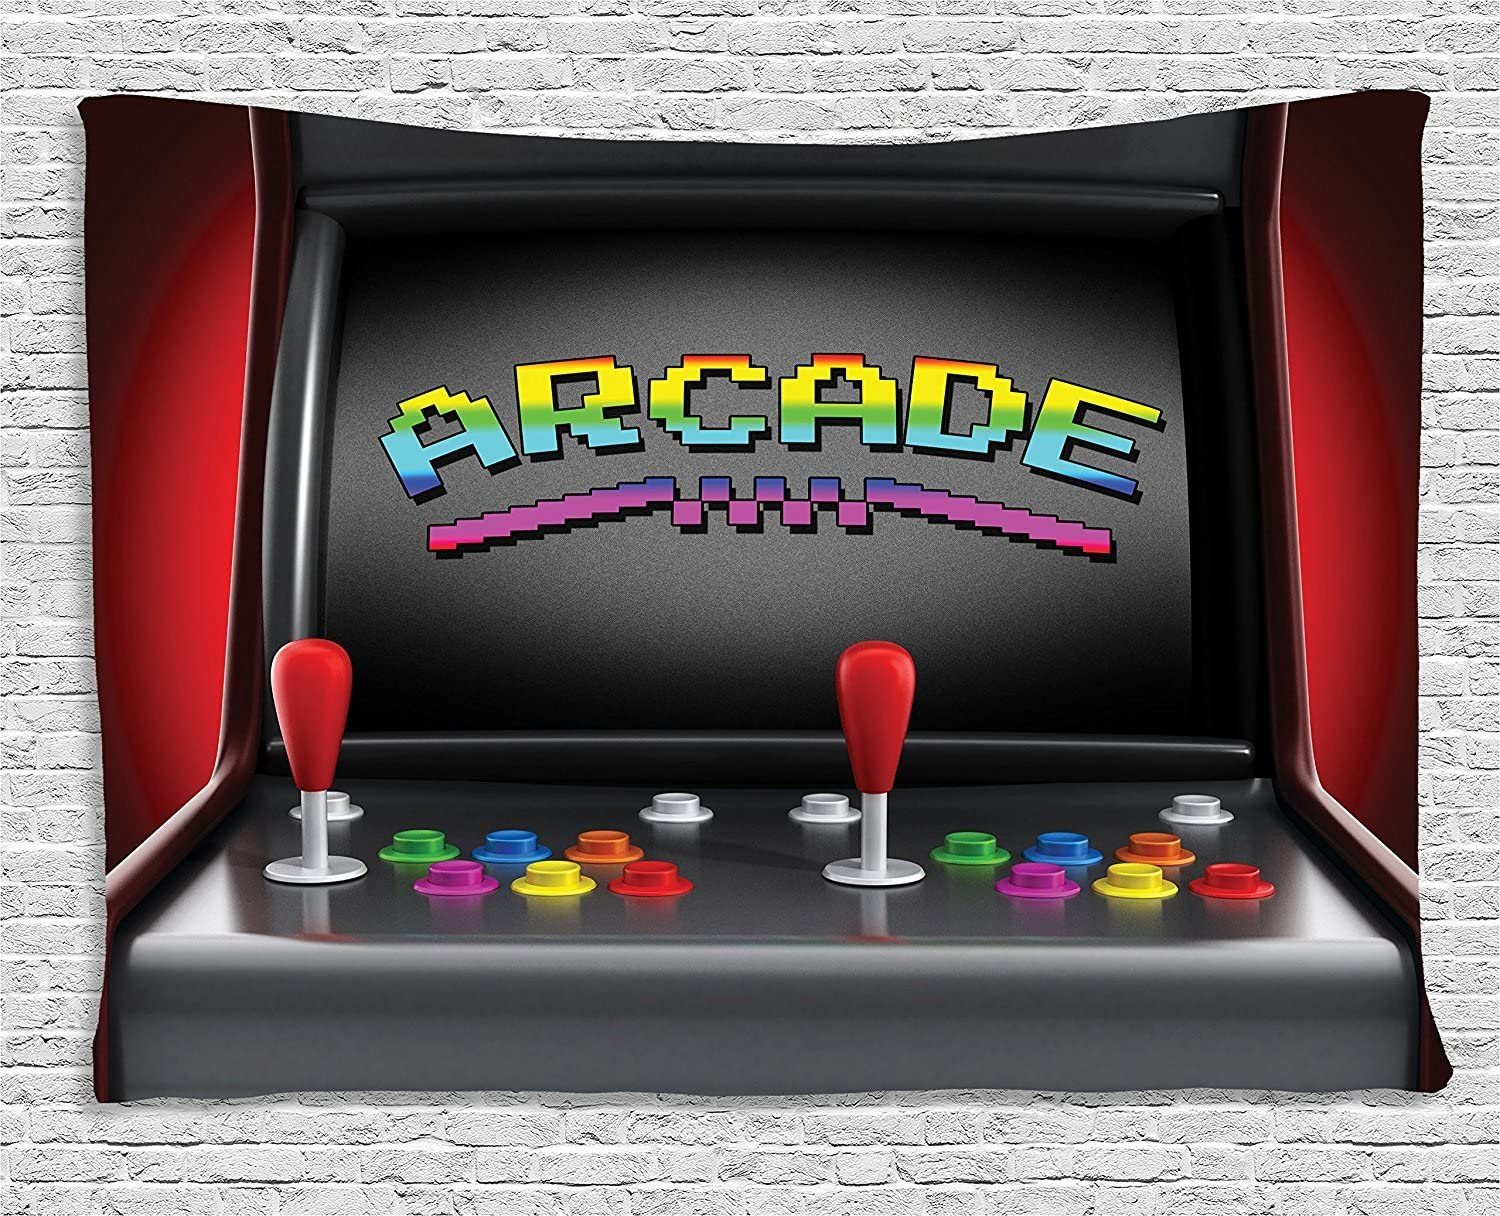 Ambesonne Video Games Tapestry, Arcade Machine Retro Gaming Fun Joystick Buttons Vintage 80's 90's Electronic, Wide Wall Hanging for Bedroom Living Room Dorm, 80